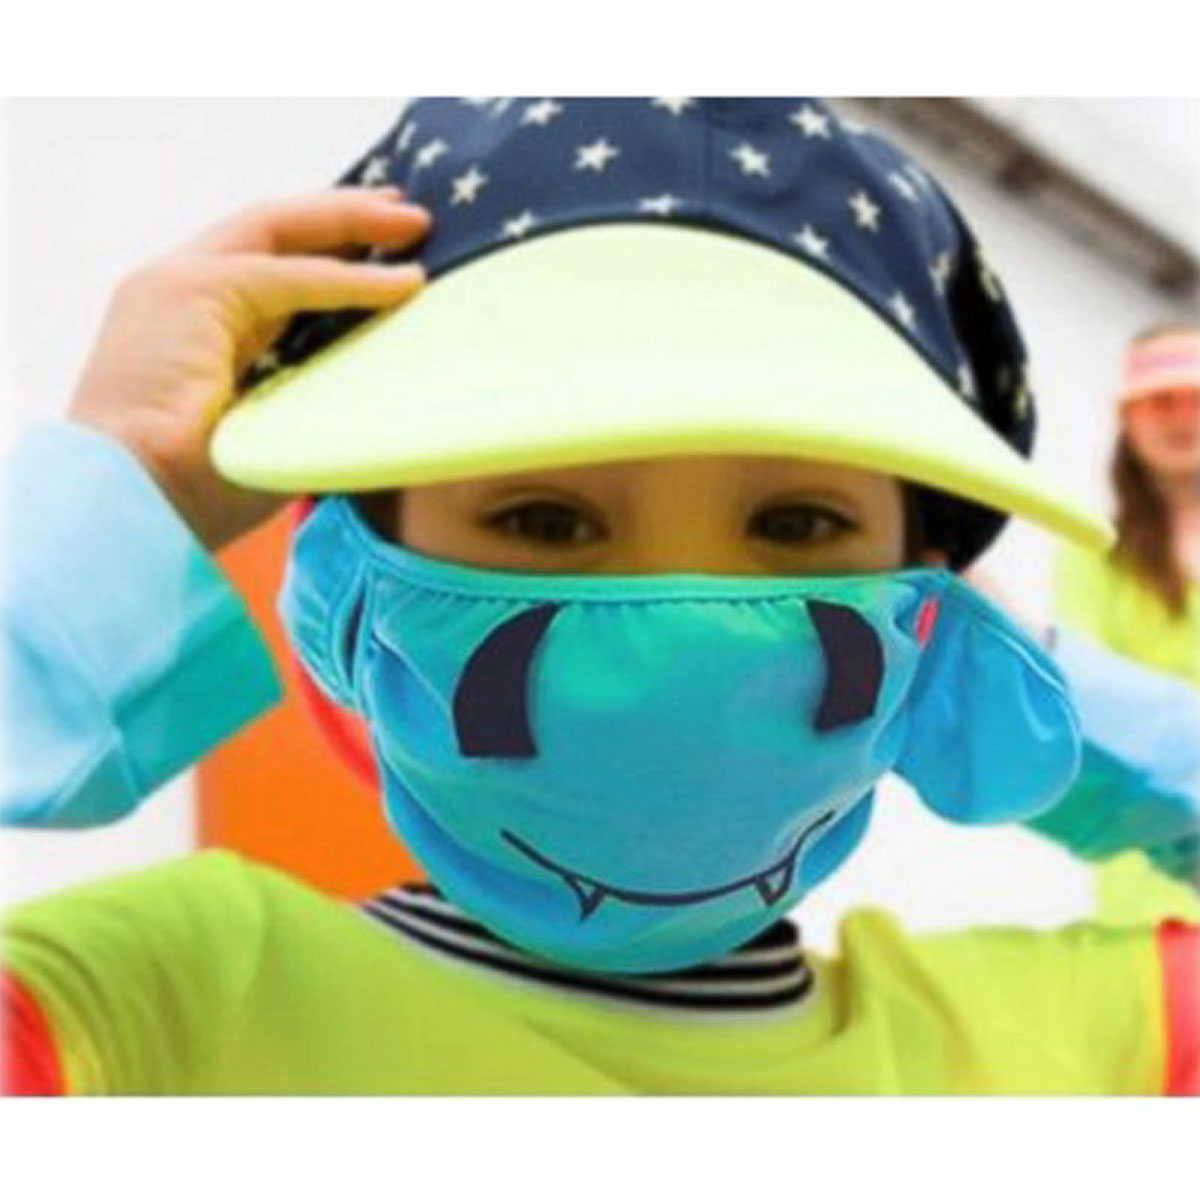 a28306233eab1 Official authorization after the benefit of Taiwan hoii sunscreen masks  children s variety of modeling sunscreen masks. Zoom · lightbox moreview ·  lightbox ...